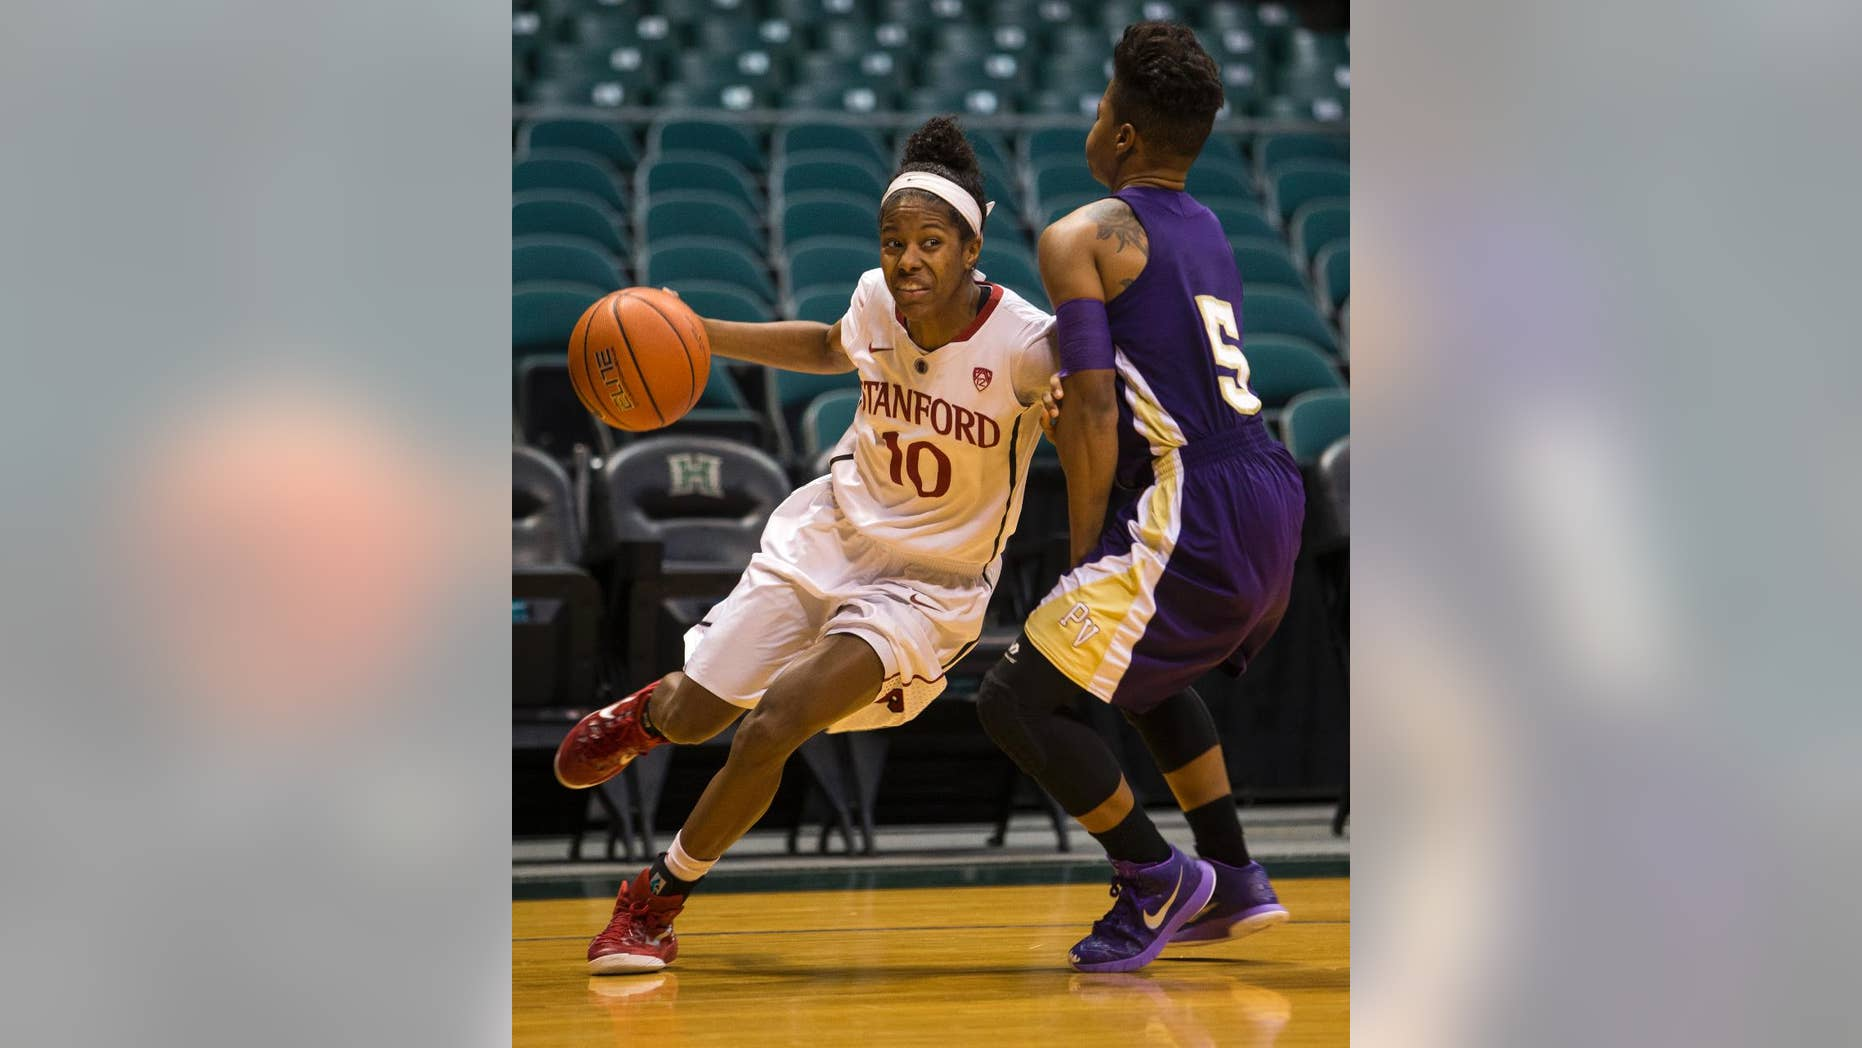 Stanford guard Briana Roberson (10) drives past Prairie View A&M Shaneece Stephens during the first half of an NCAA college basketball game, Sunday, Nov. 30, 2014 in Honolulu.  (AP Photo/Marco Garcia)